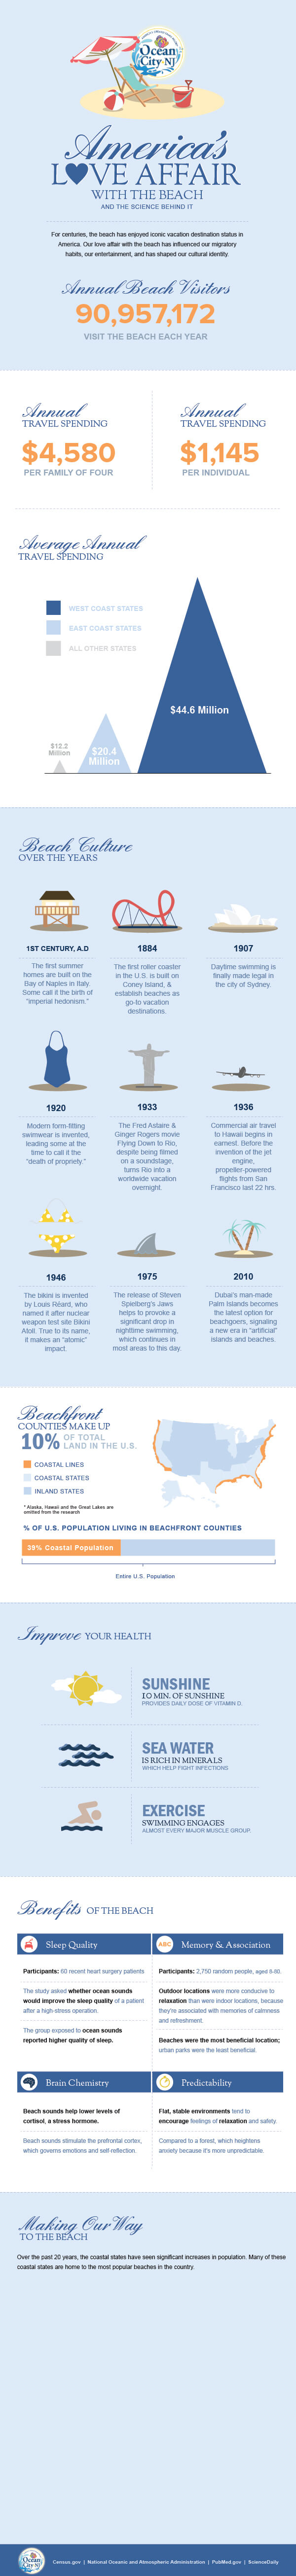 america-love-affair-with-beach-infographic